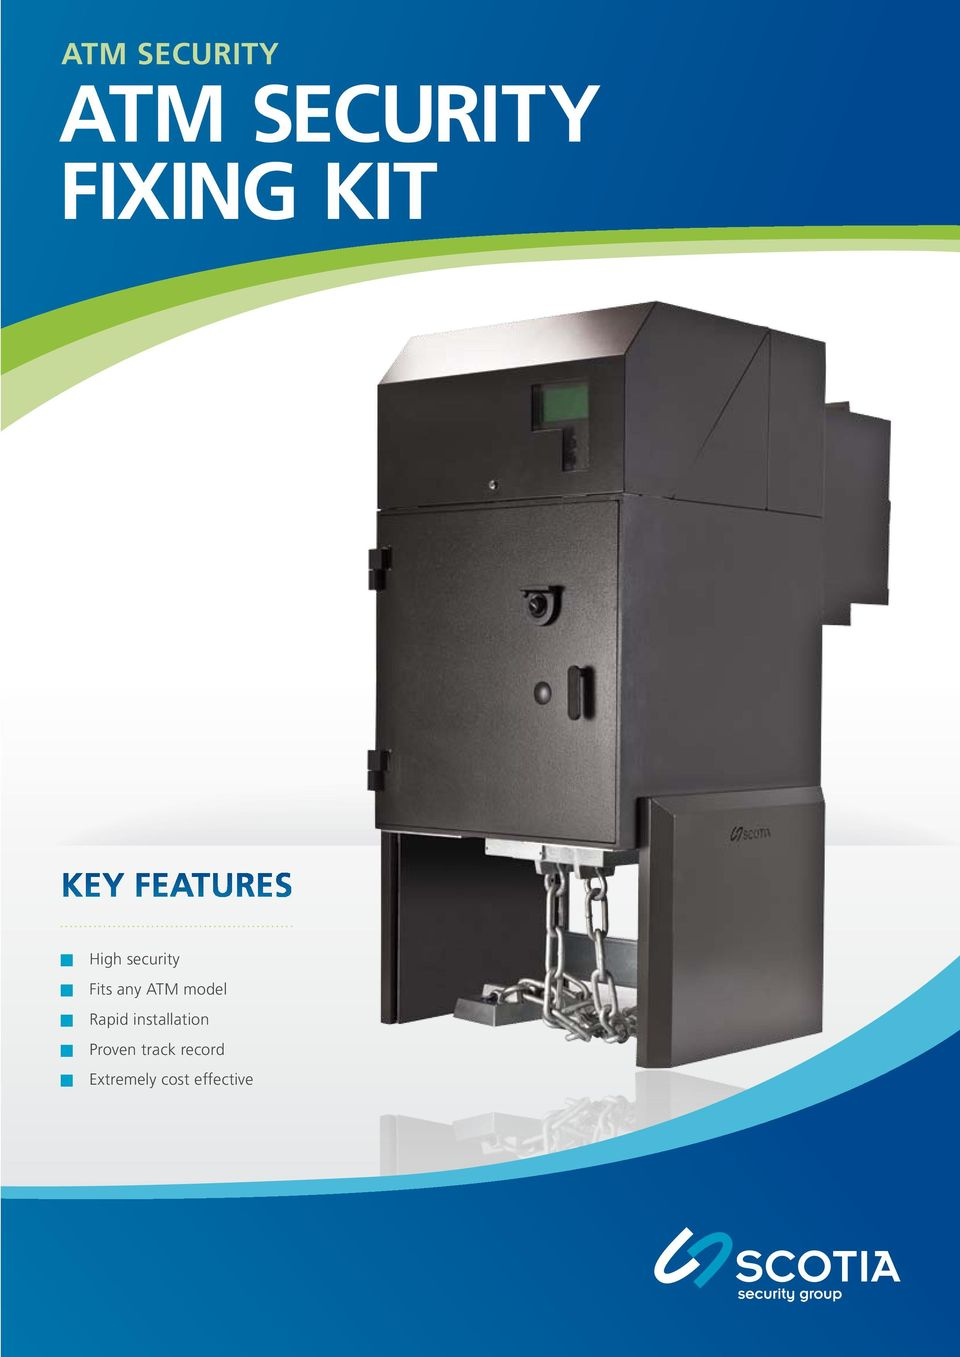 ATM model Rapid installation Proven